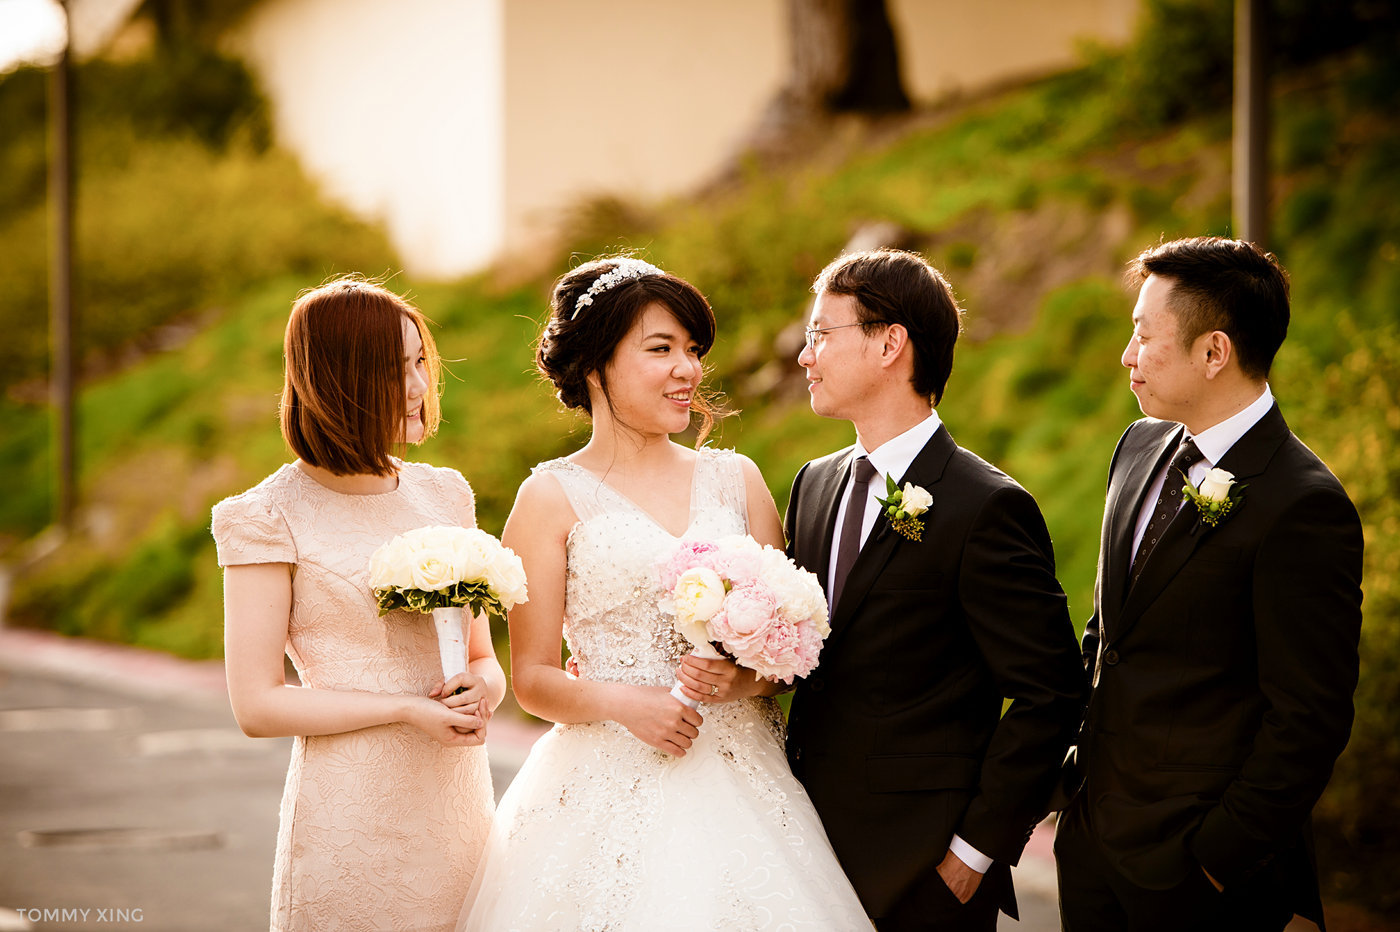 Qinglu Meng & Daozheng Chen Wedding Slideshow-170-E.JPG